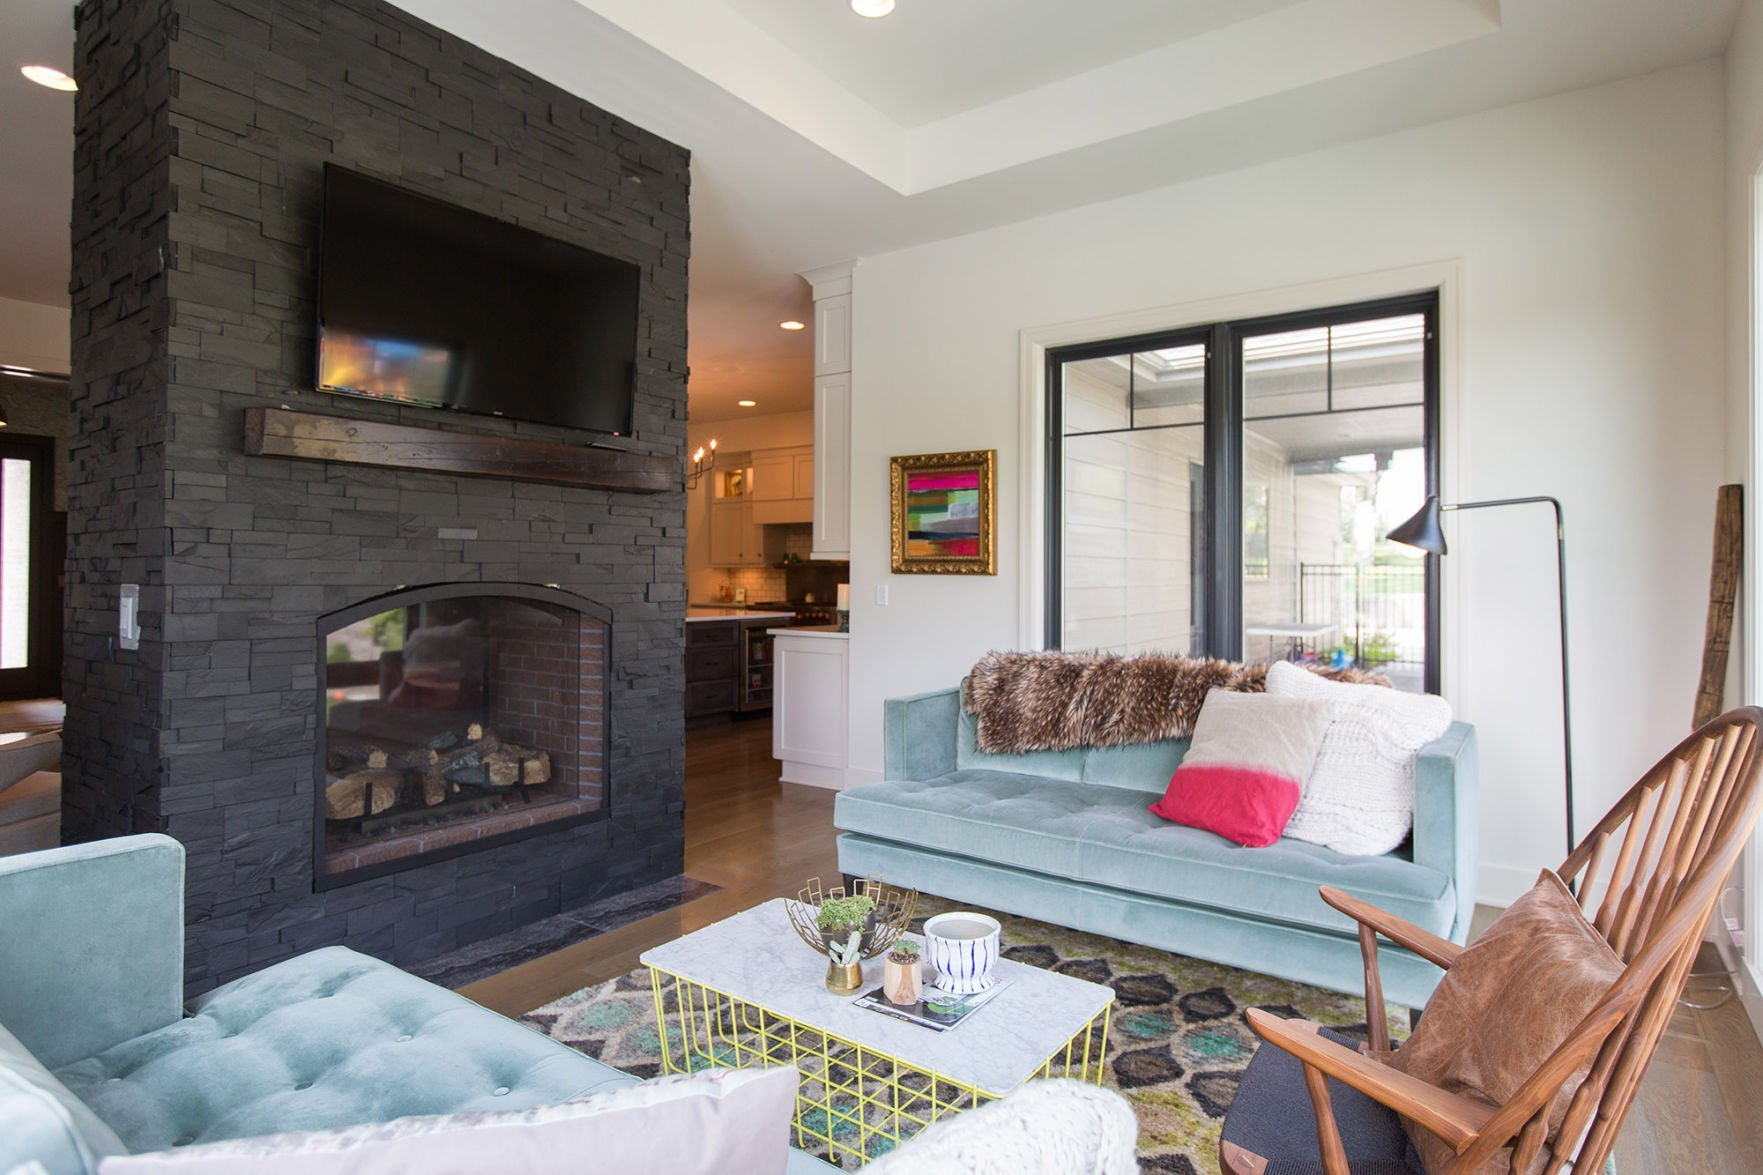 U0027I Was So Afraid,u0027 Gretna Woman Says Of Consulting Interior Designer, But  The Result U2014 A Mix Of Modern, Antique U2014 Is A Perfect Fit | Inspired Living  Omaha ...